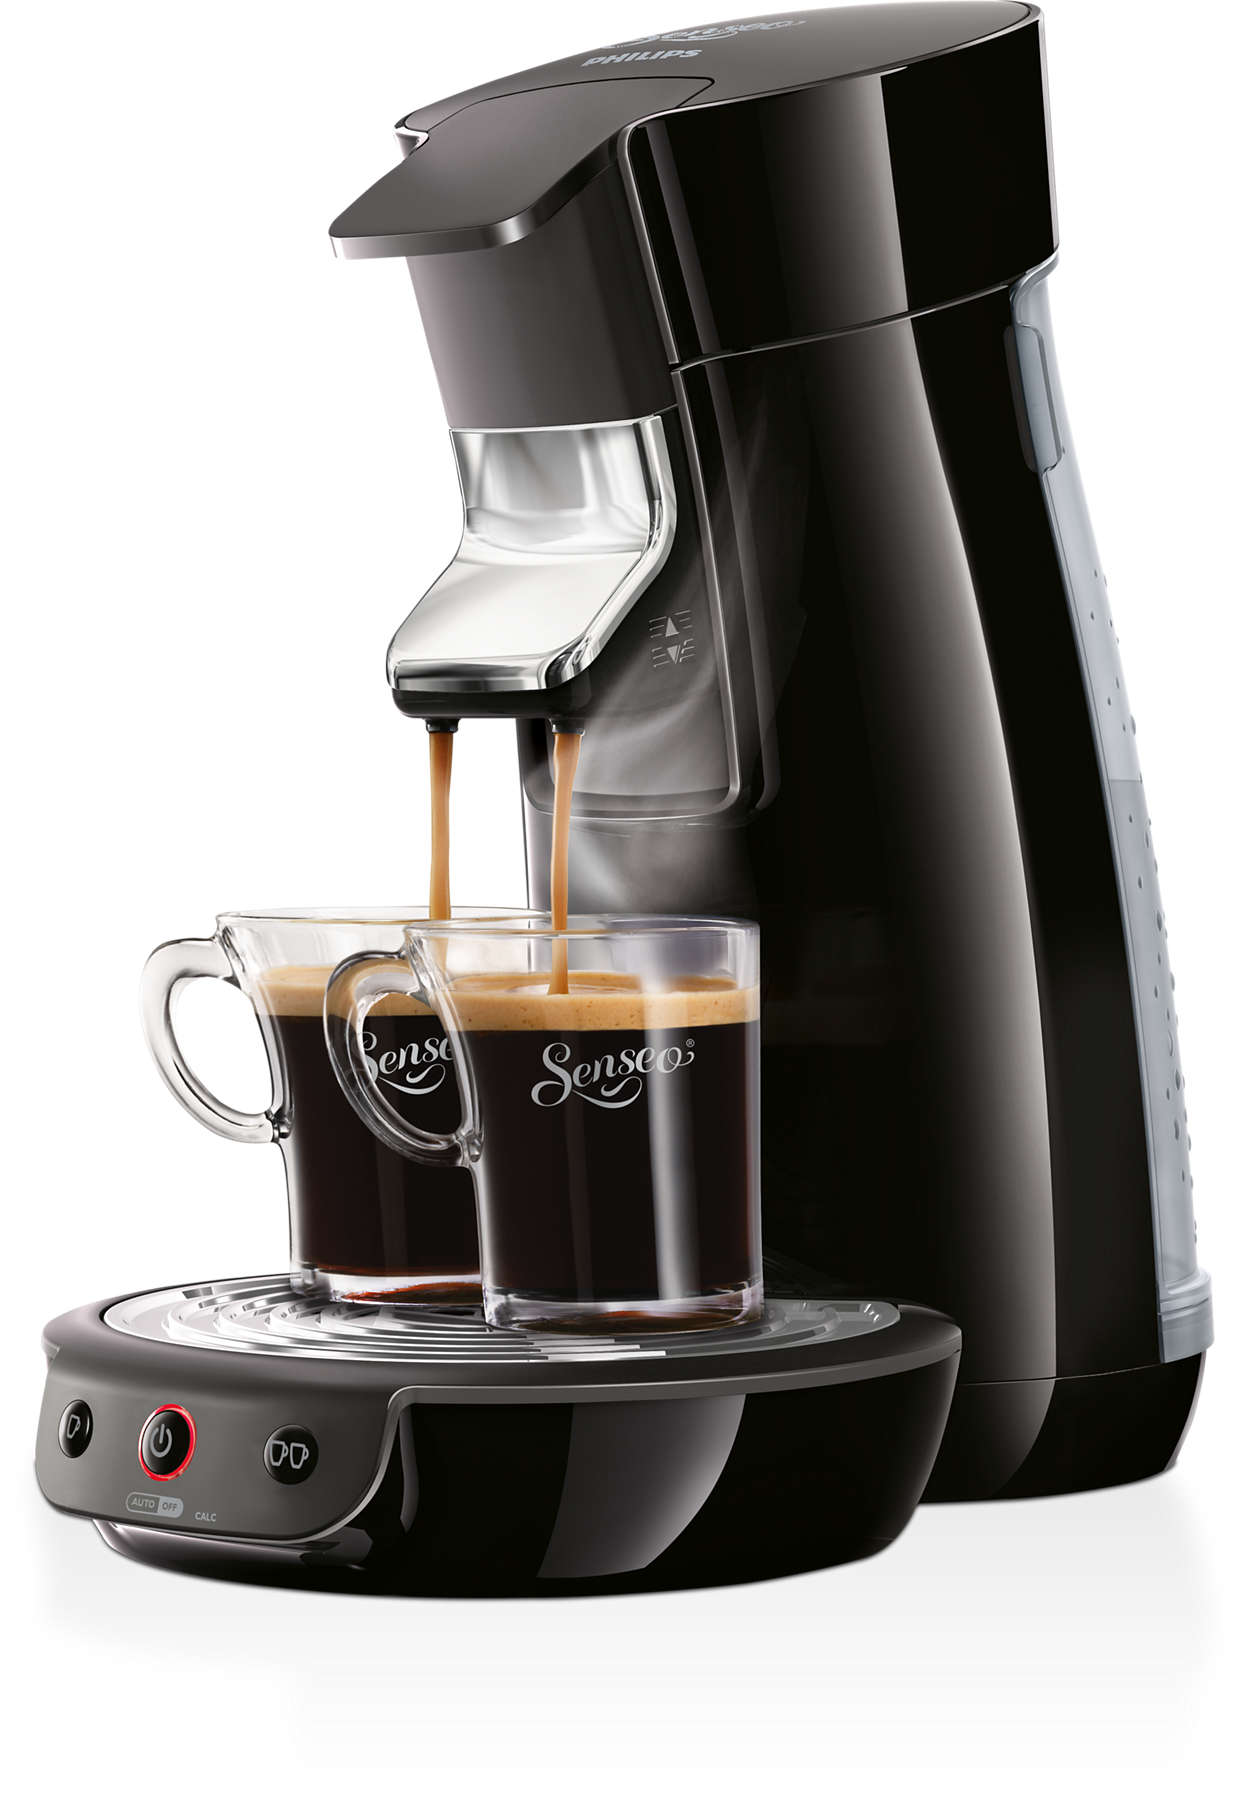 viva caf coffee pod machine hd7825 60 senseo. Black Bedroom Furniture Sets. Home Design Ideas